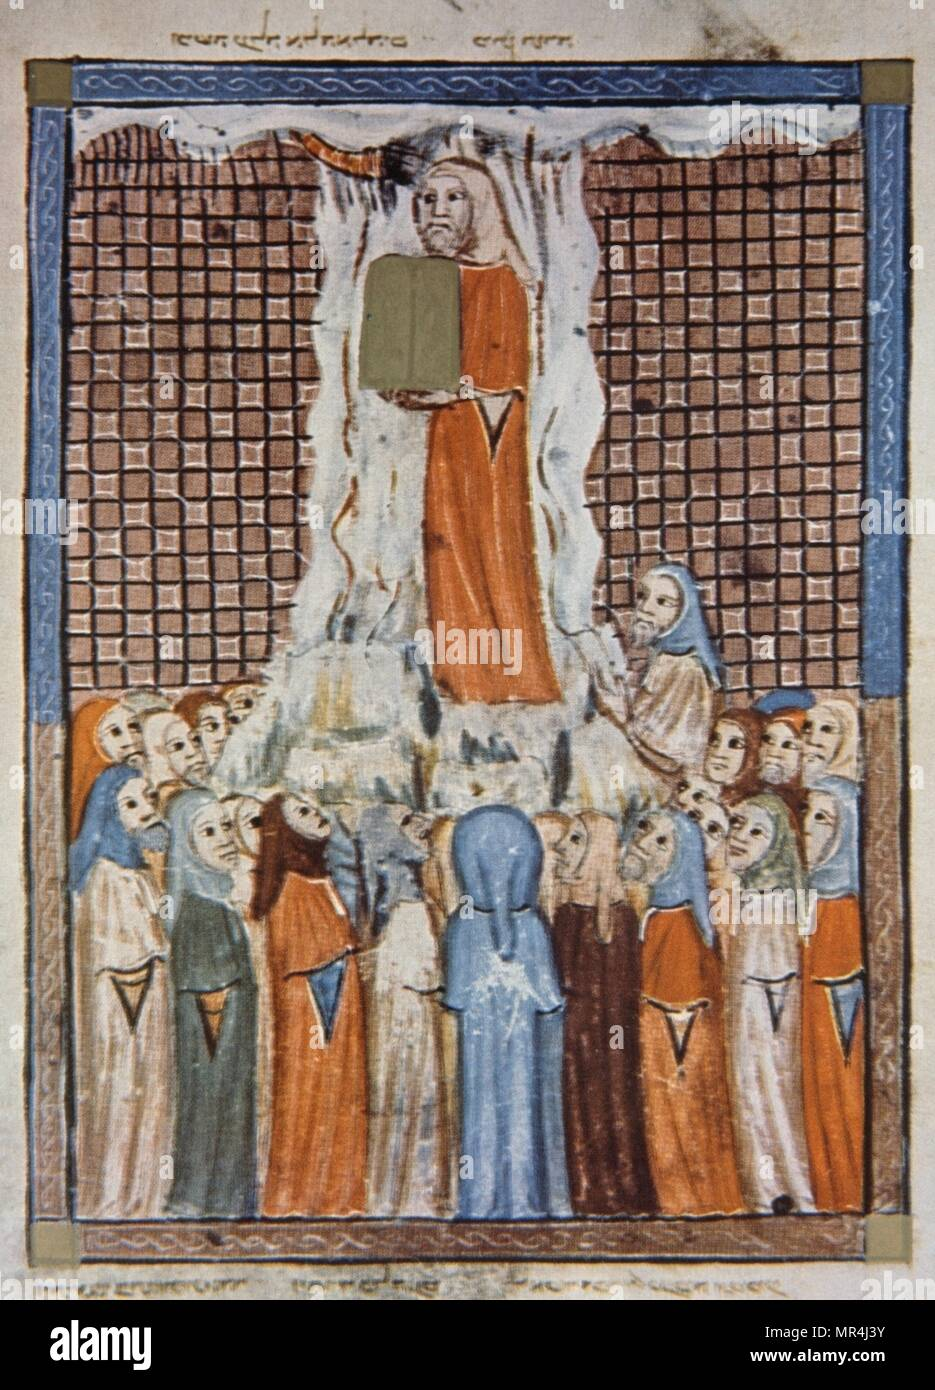 Moses presents the Ten Commandments to the Jews. Illustration from the Sarajevo Haggadah. A 14th century Jewish manuscript illustration and a Catalonian masterpiece, created in Barcelona, circa 1350, for a prominent Jewish family. - Stock Image